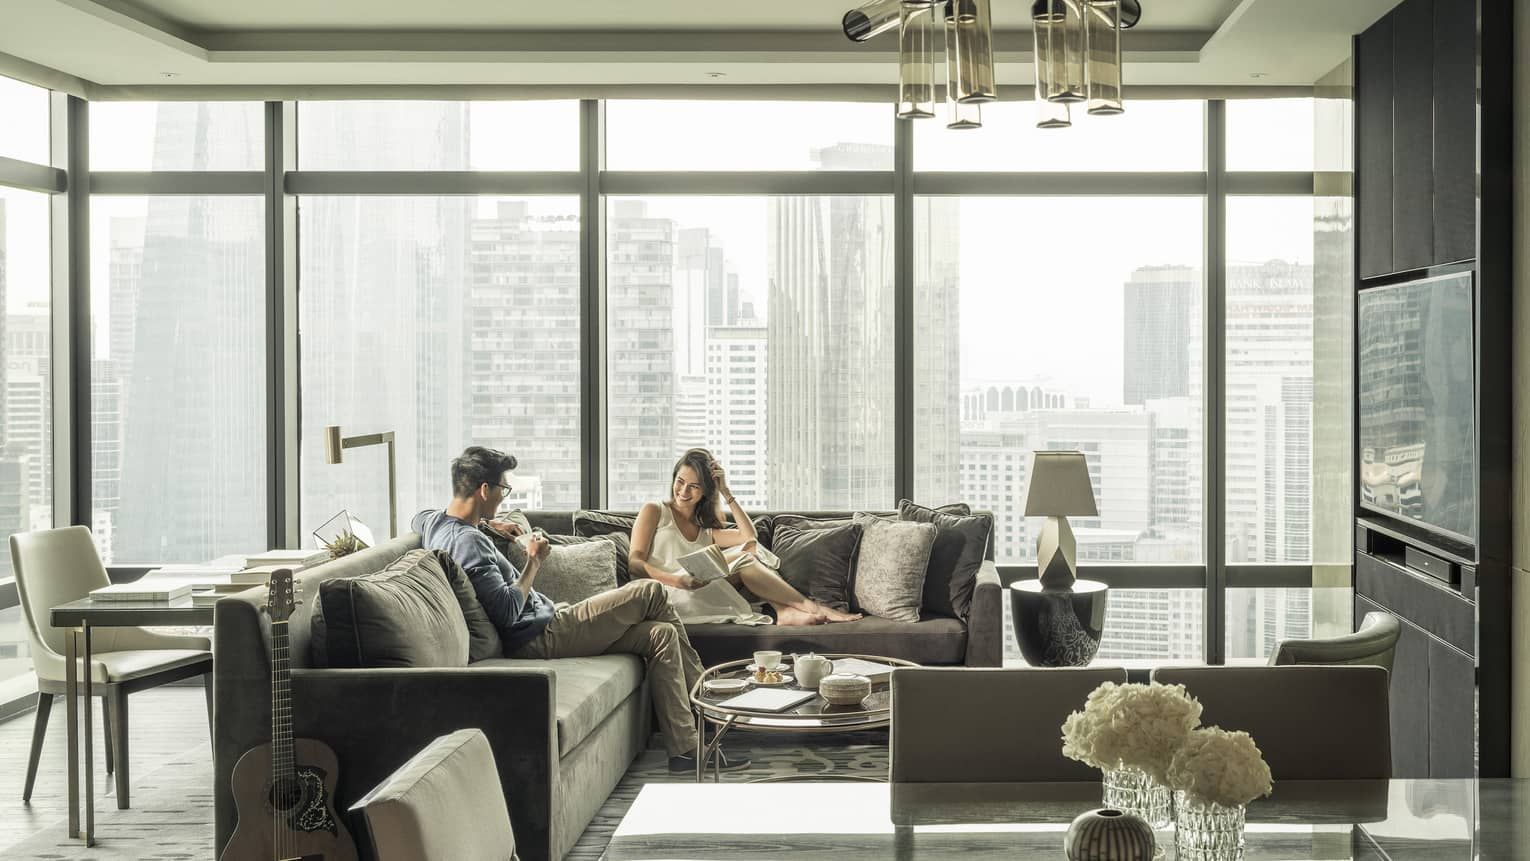 Couple relaxes on sofas in hotel suite with bright floor to ceiling windows